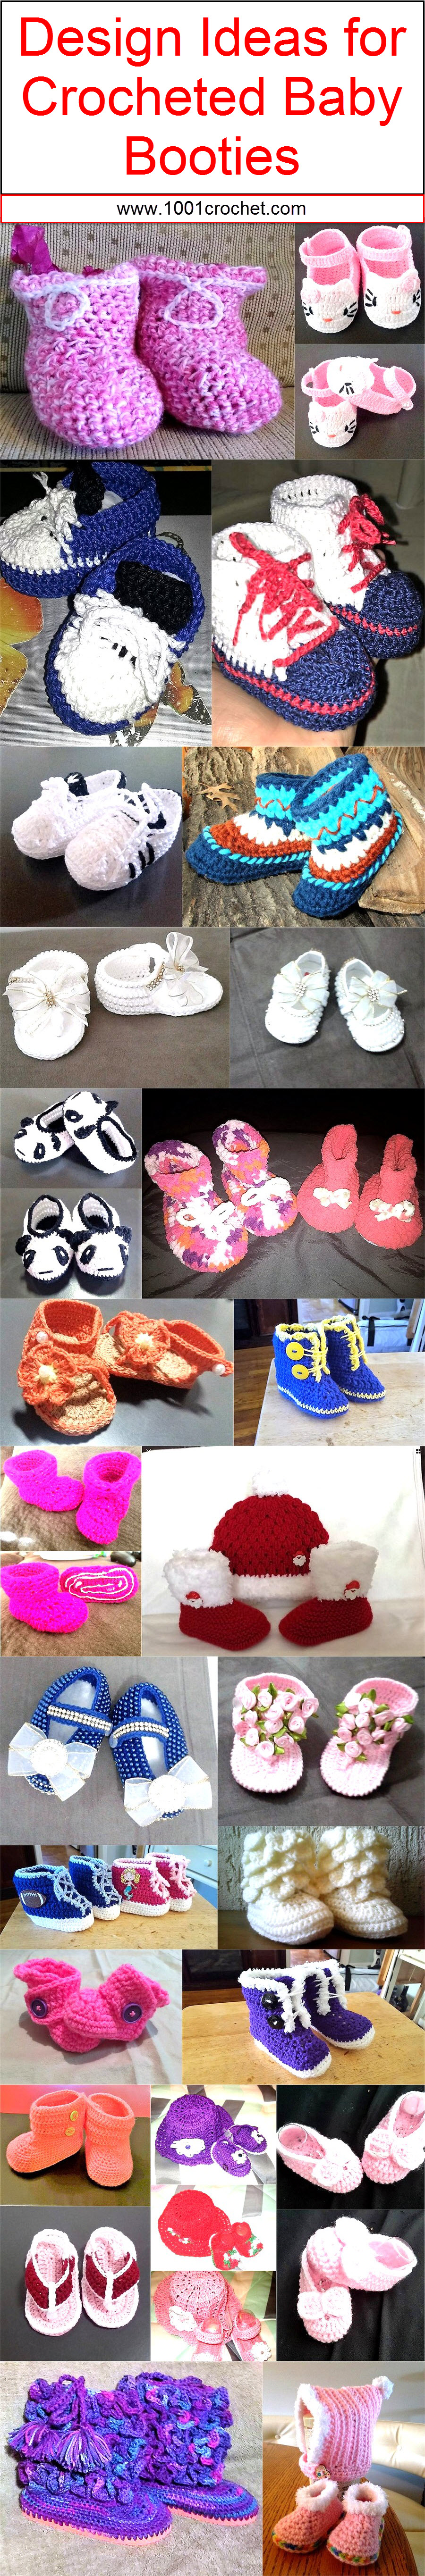 design-ideas-for-crocheted-baby-booties